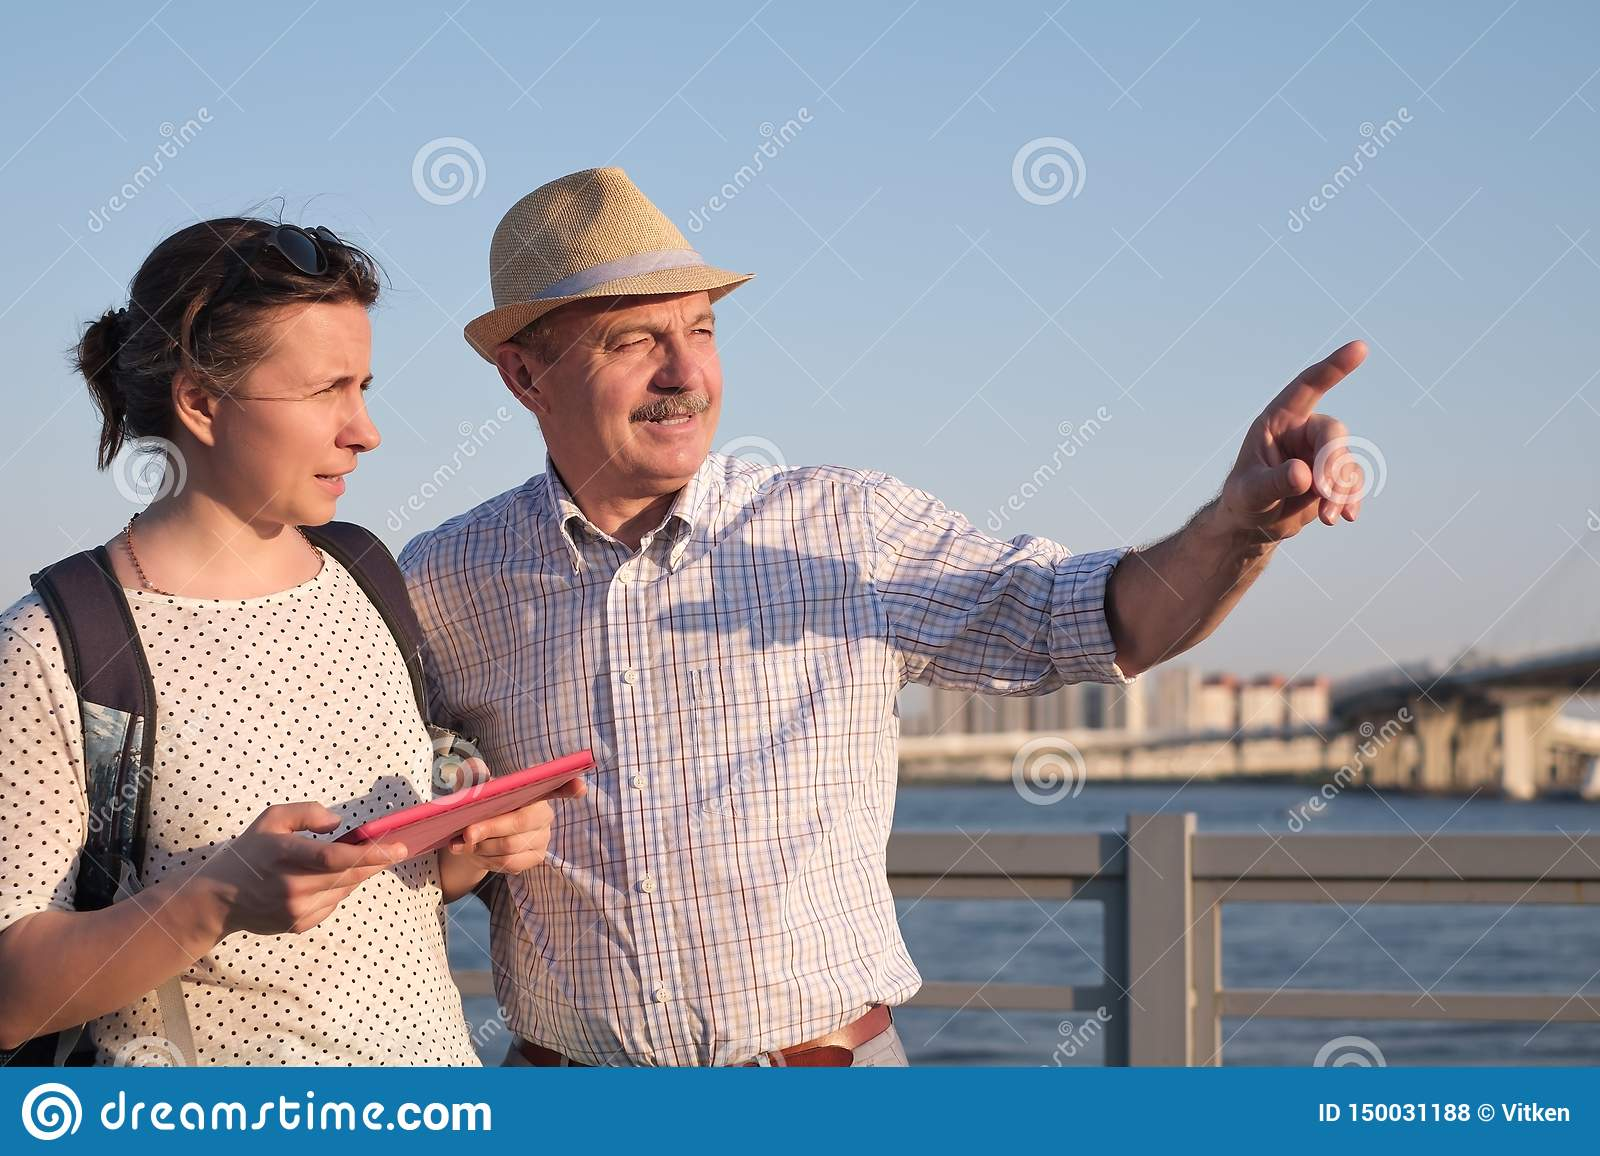 Senior man in summer hat shows the way on the map to young woman.